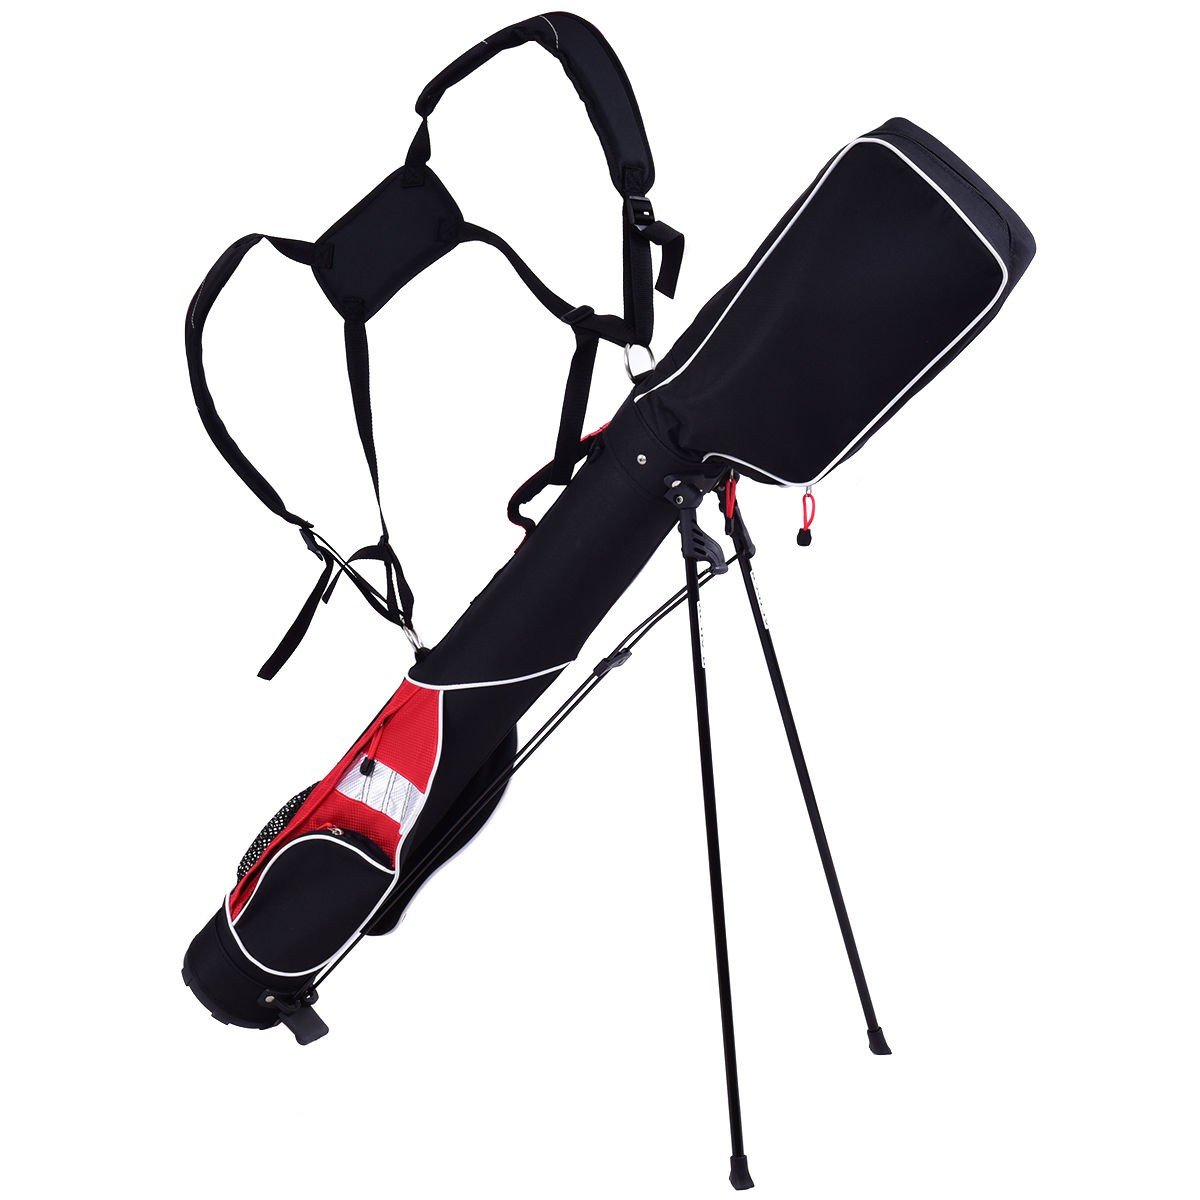 5'' Sunday Golf Bag Stand 7 Clubs Carry Pockets - By Choice Products by By Choice Products (Image #2)